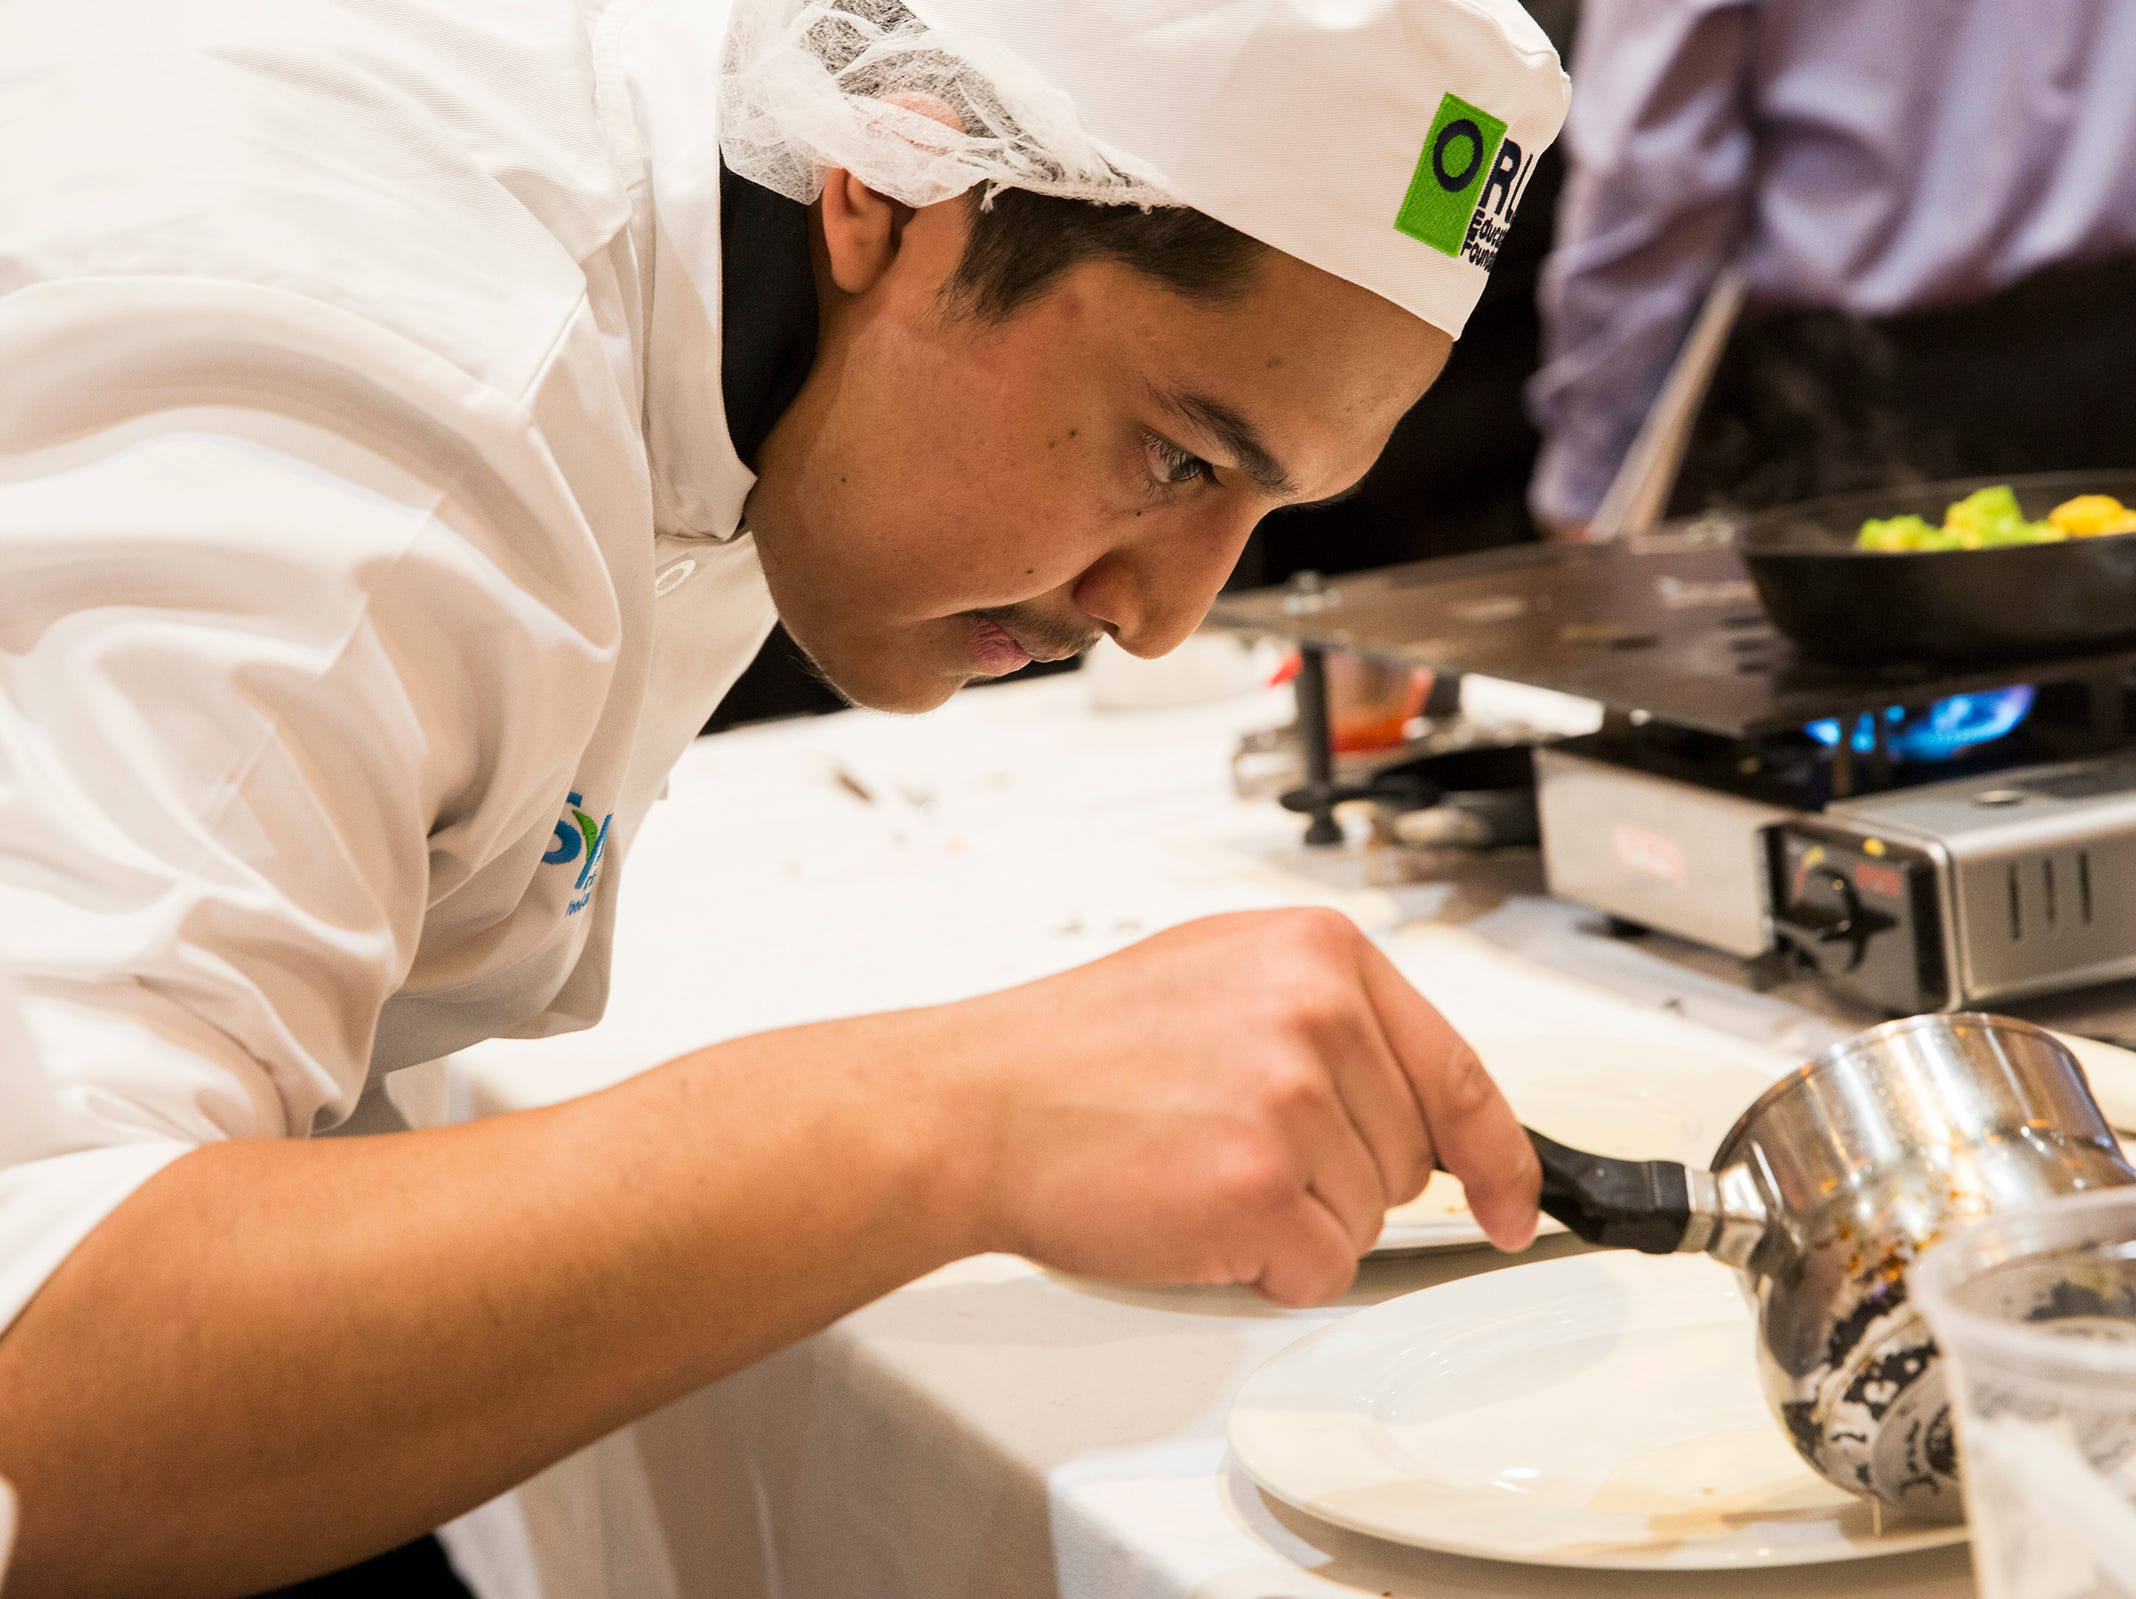 McMinnville's Bryan Lara-Barragan drizzles their supreme sauce onto the main entree dish during the ORLAEF's ProStart Invitational, a statewide high school culinary competition, at the Salem Convention Center on March 18, 2019.